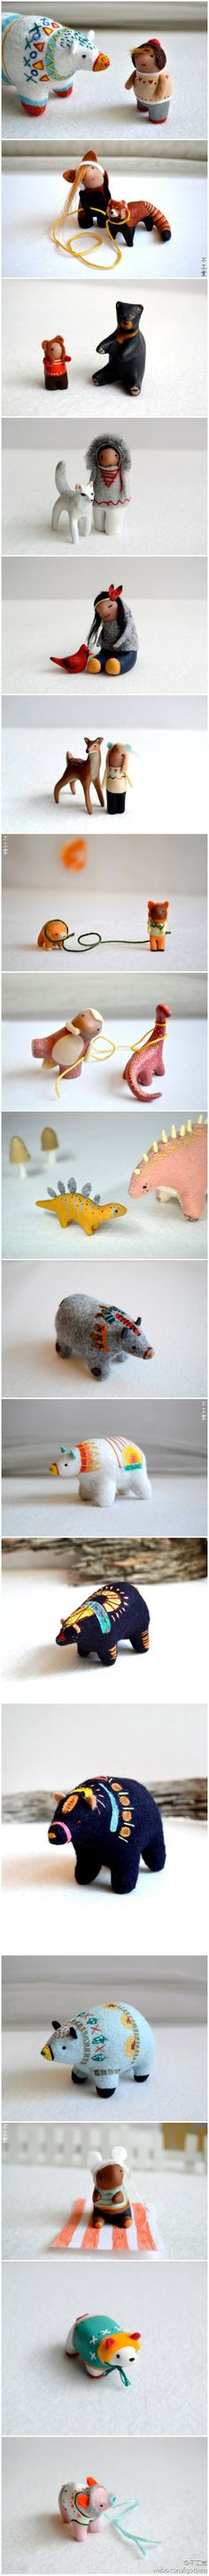 Polymer clay + felting for winter figures - people and animals.